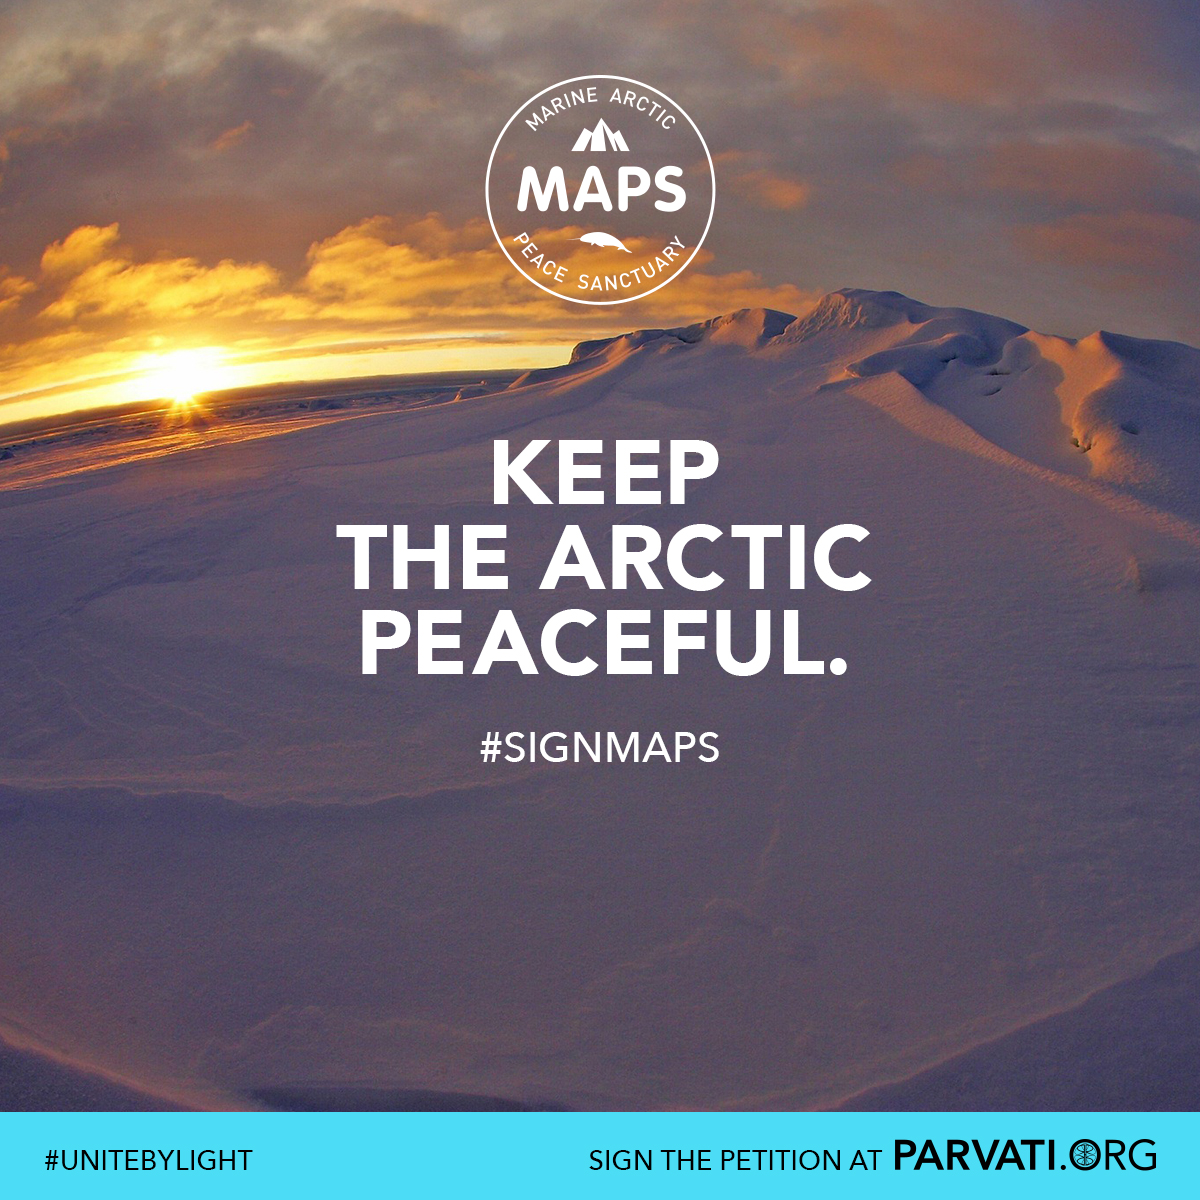 MAPS: The Marine Arctic Peace Sanctuary, the world's largest peace park.